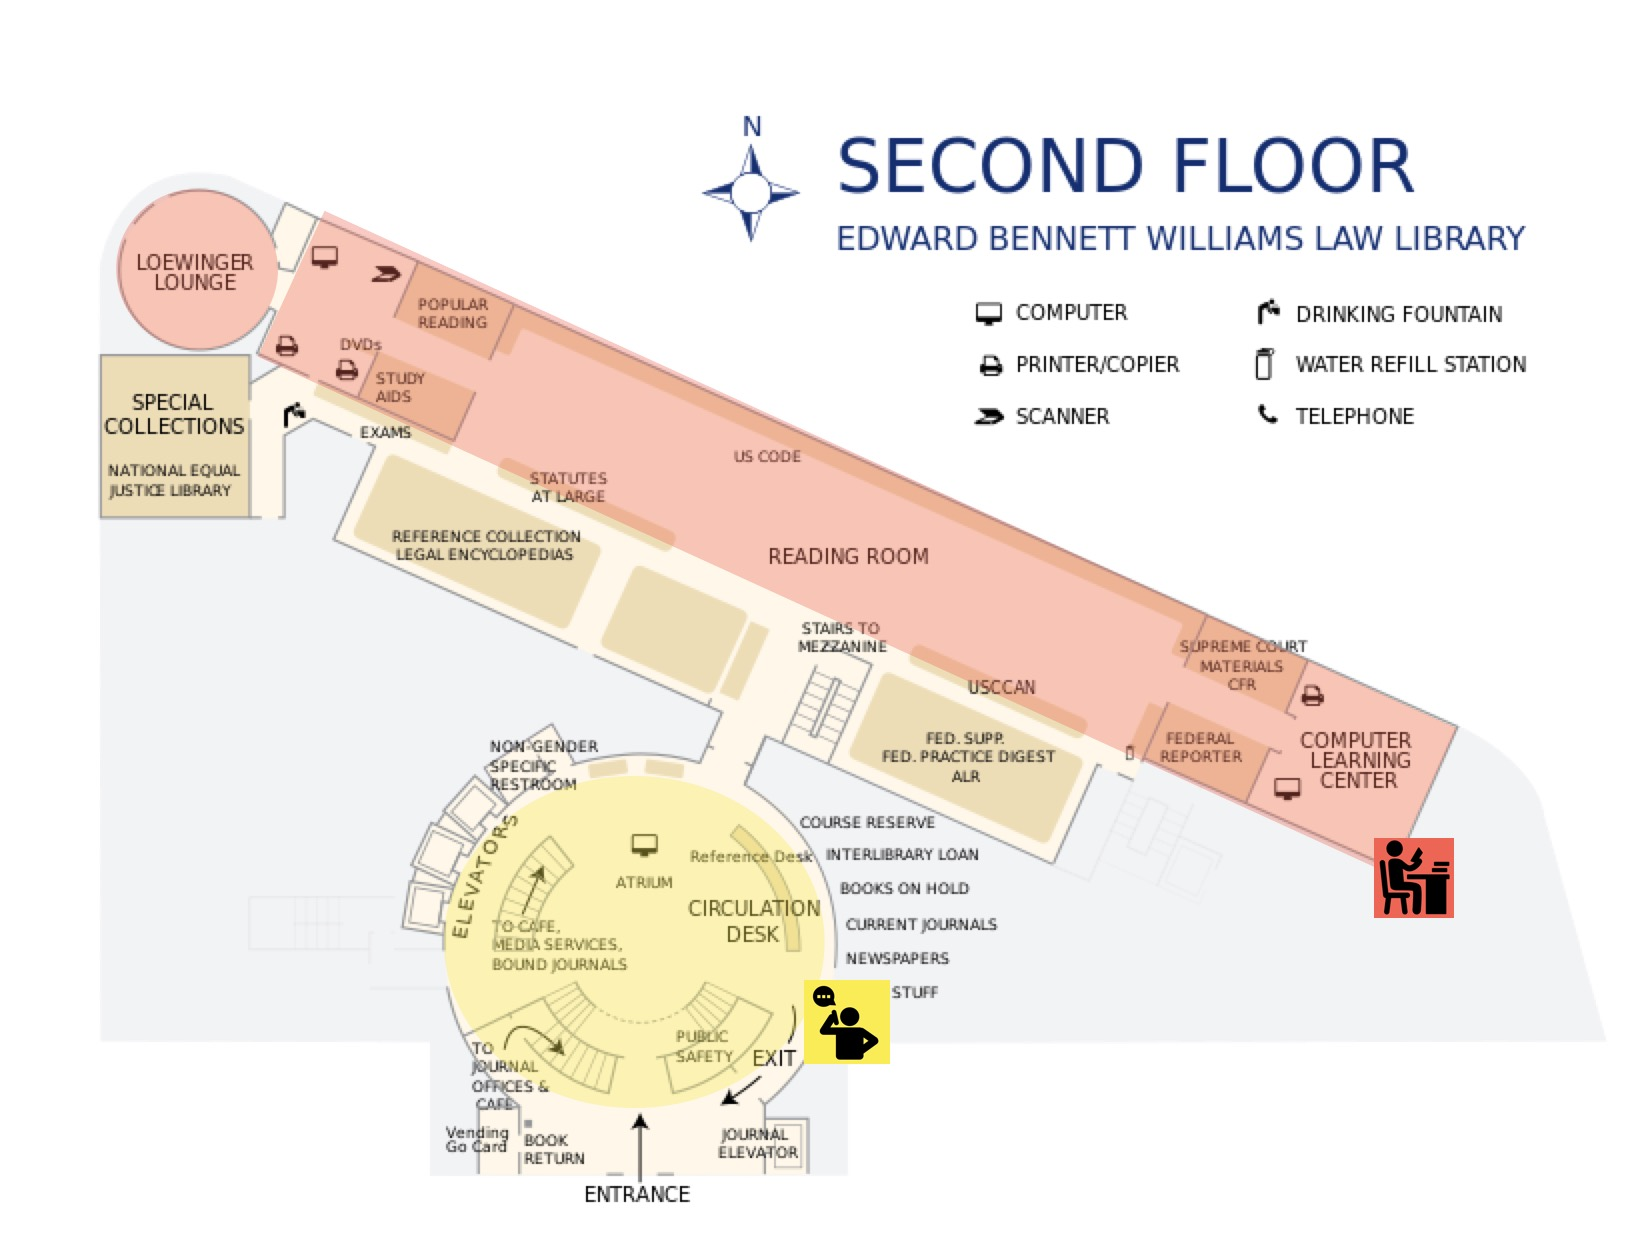 Map of Williams Library Second Floor with noise zones indicated